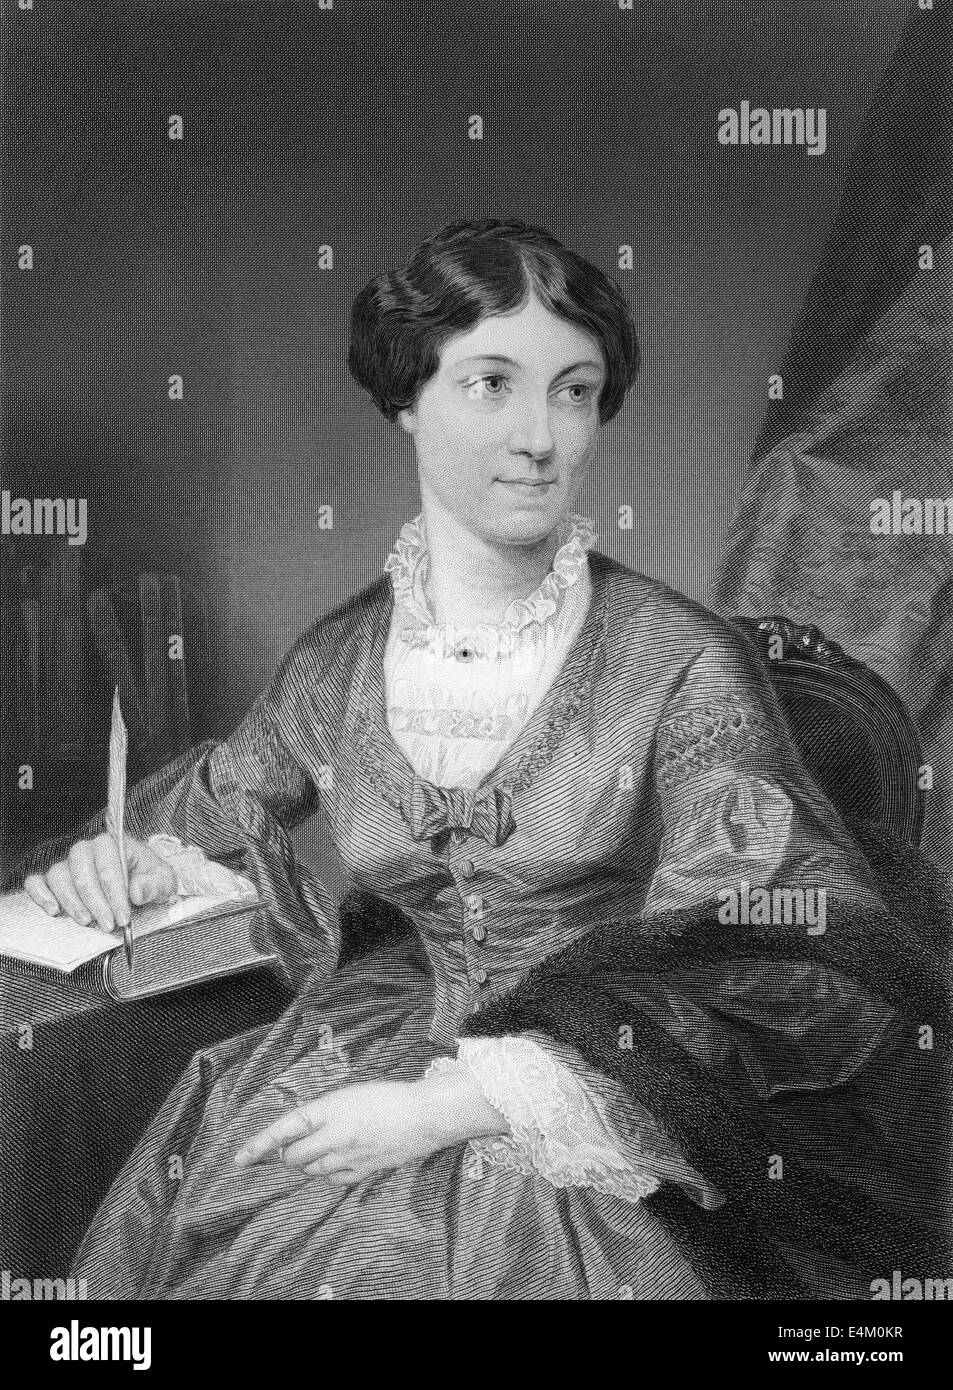 Harriet Martineau, 1802 - 1876, an English social theorist and Whig writer, - Stock Image